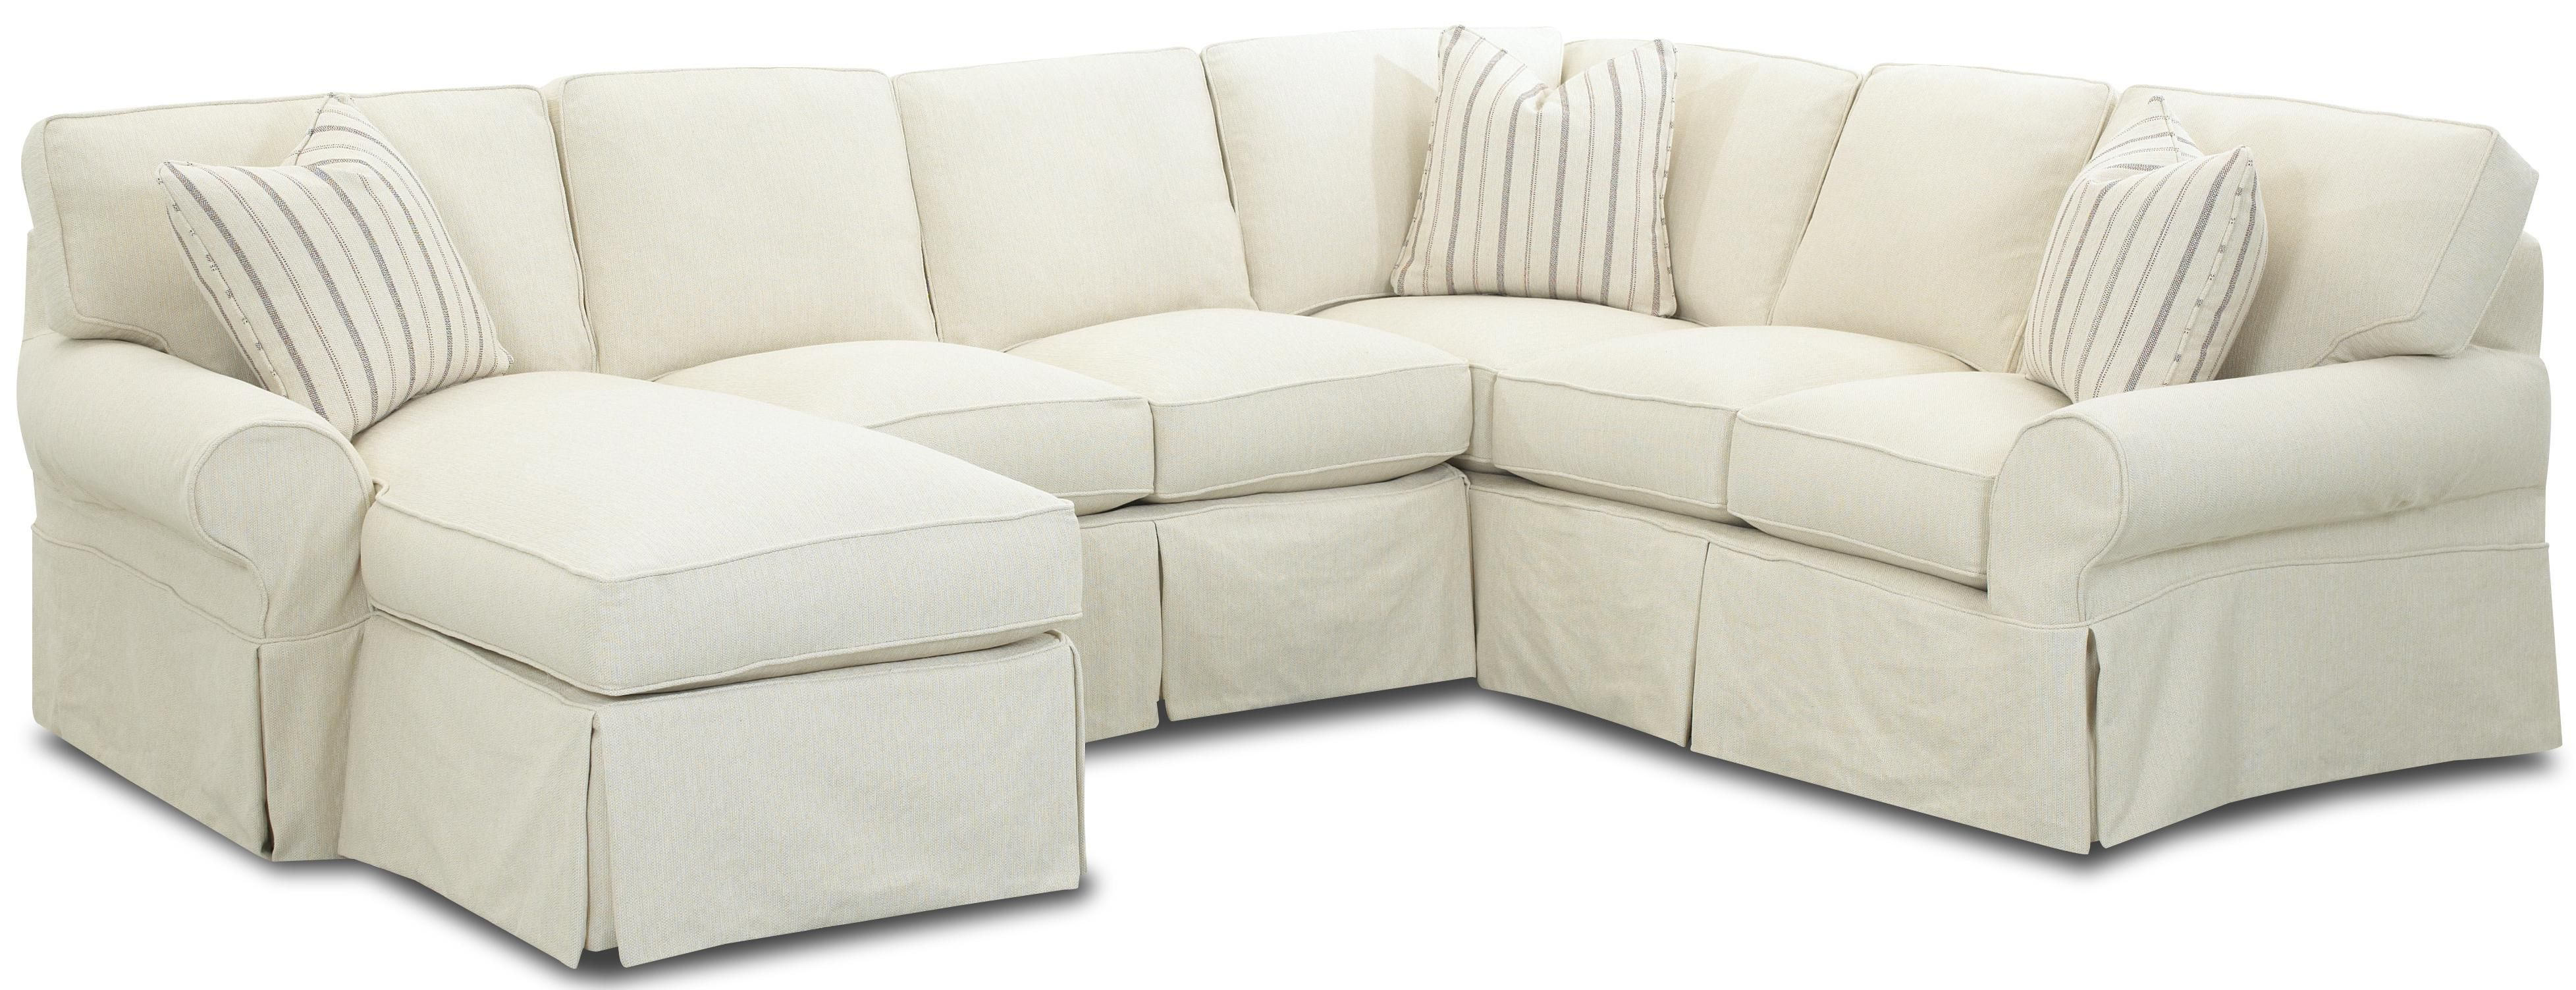 Patterns Slipcovered Sectional Sofa With Left Chaise By Klaussner Wolf Furniture